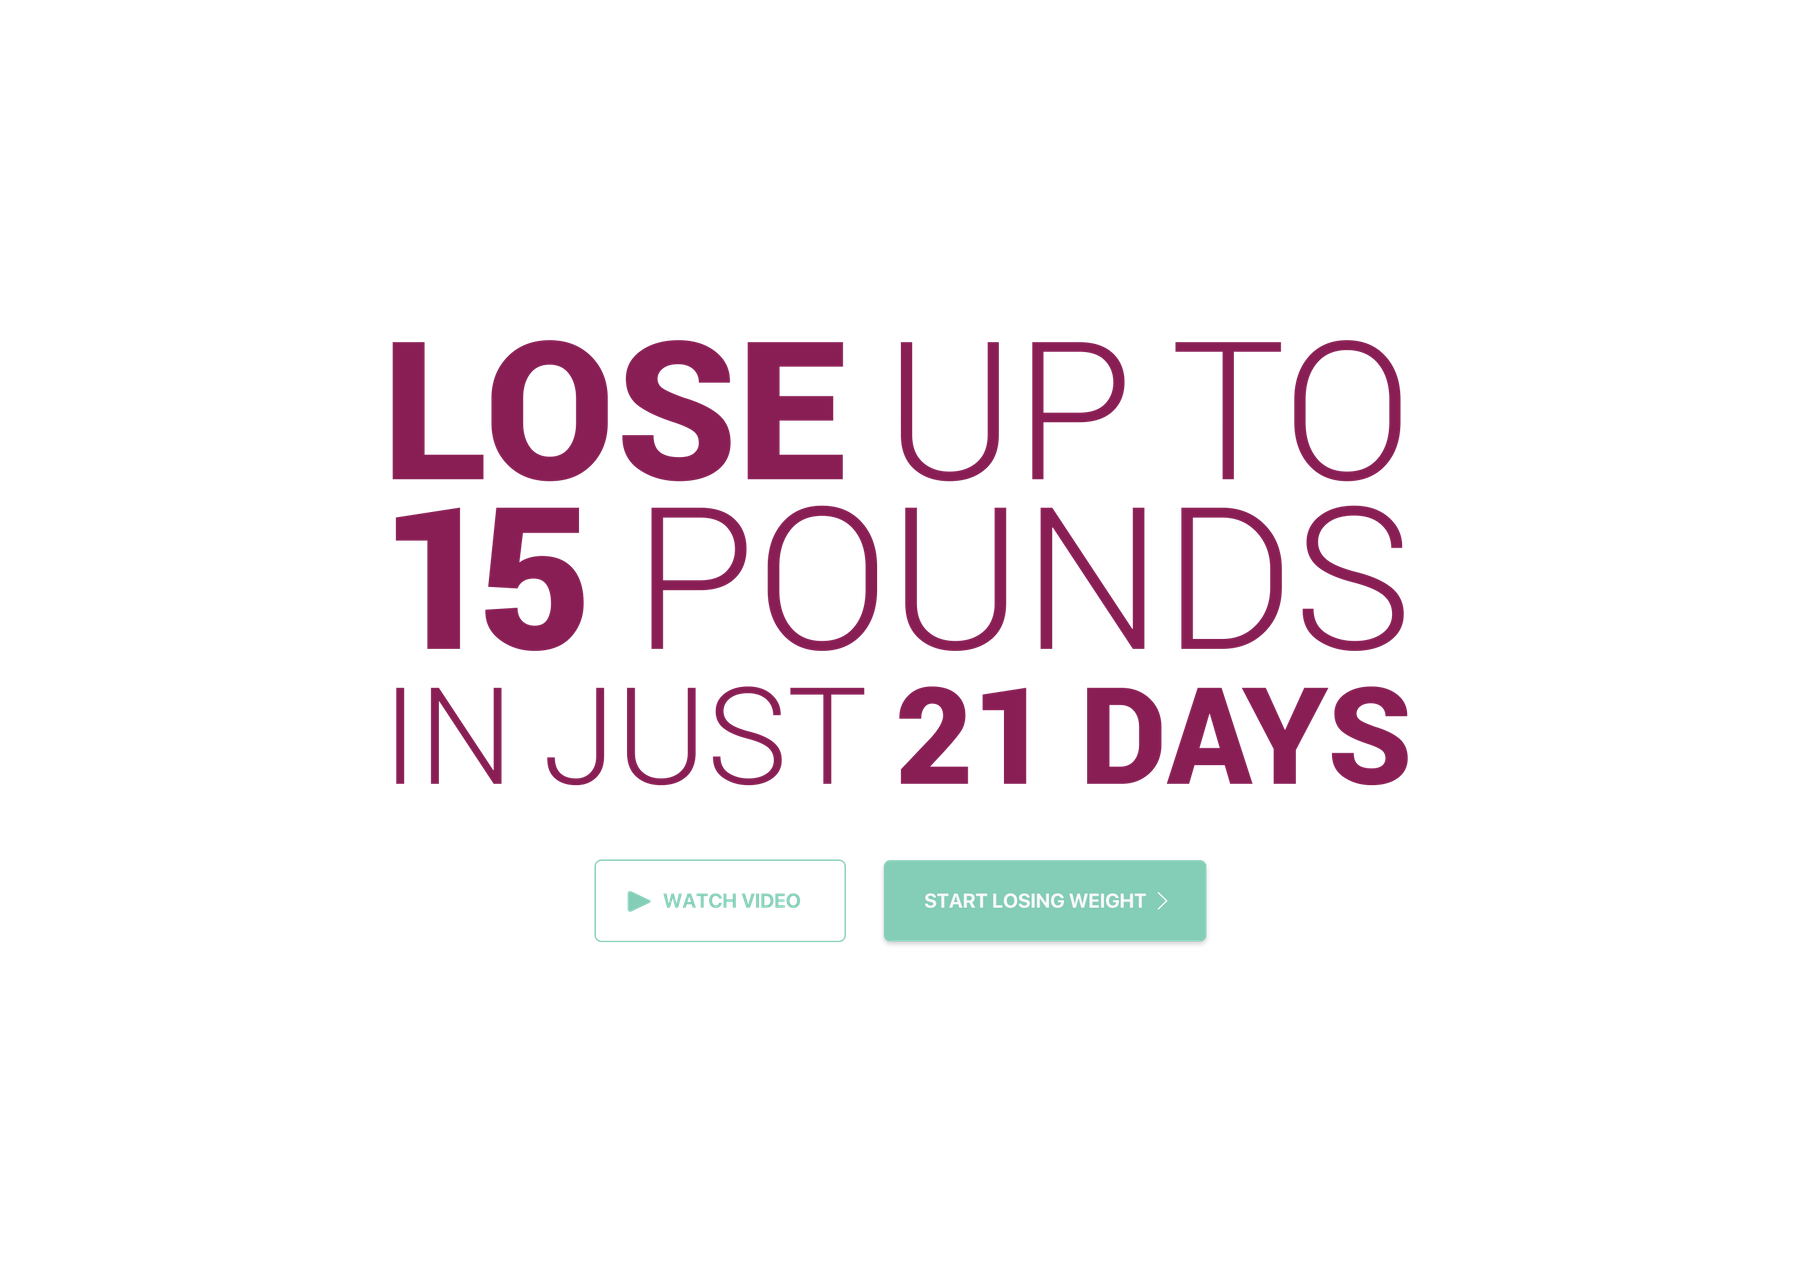 Lose up to 15 pounds in just 21 days intro to Chalene Johnson's Diet Program app